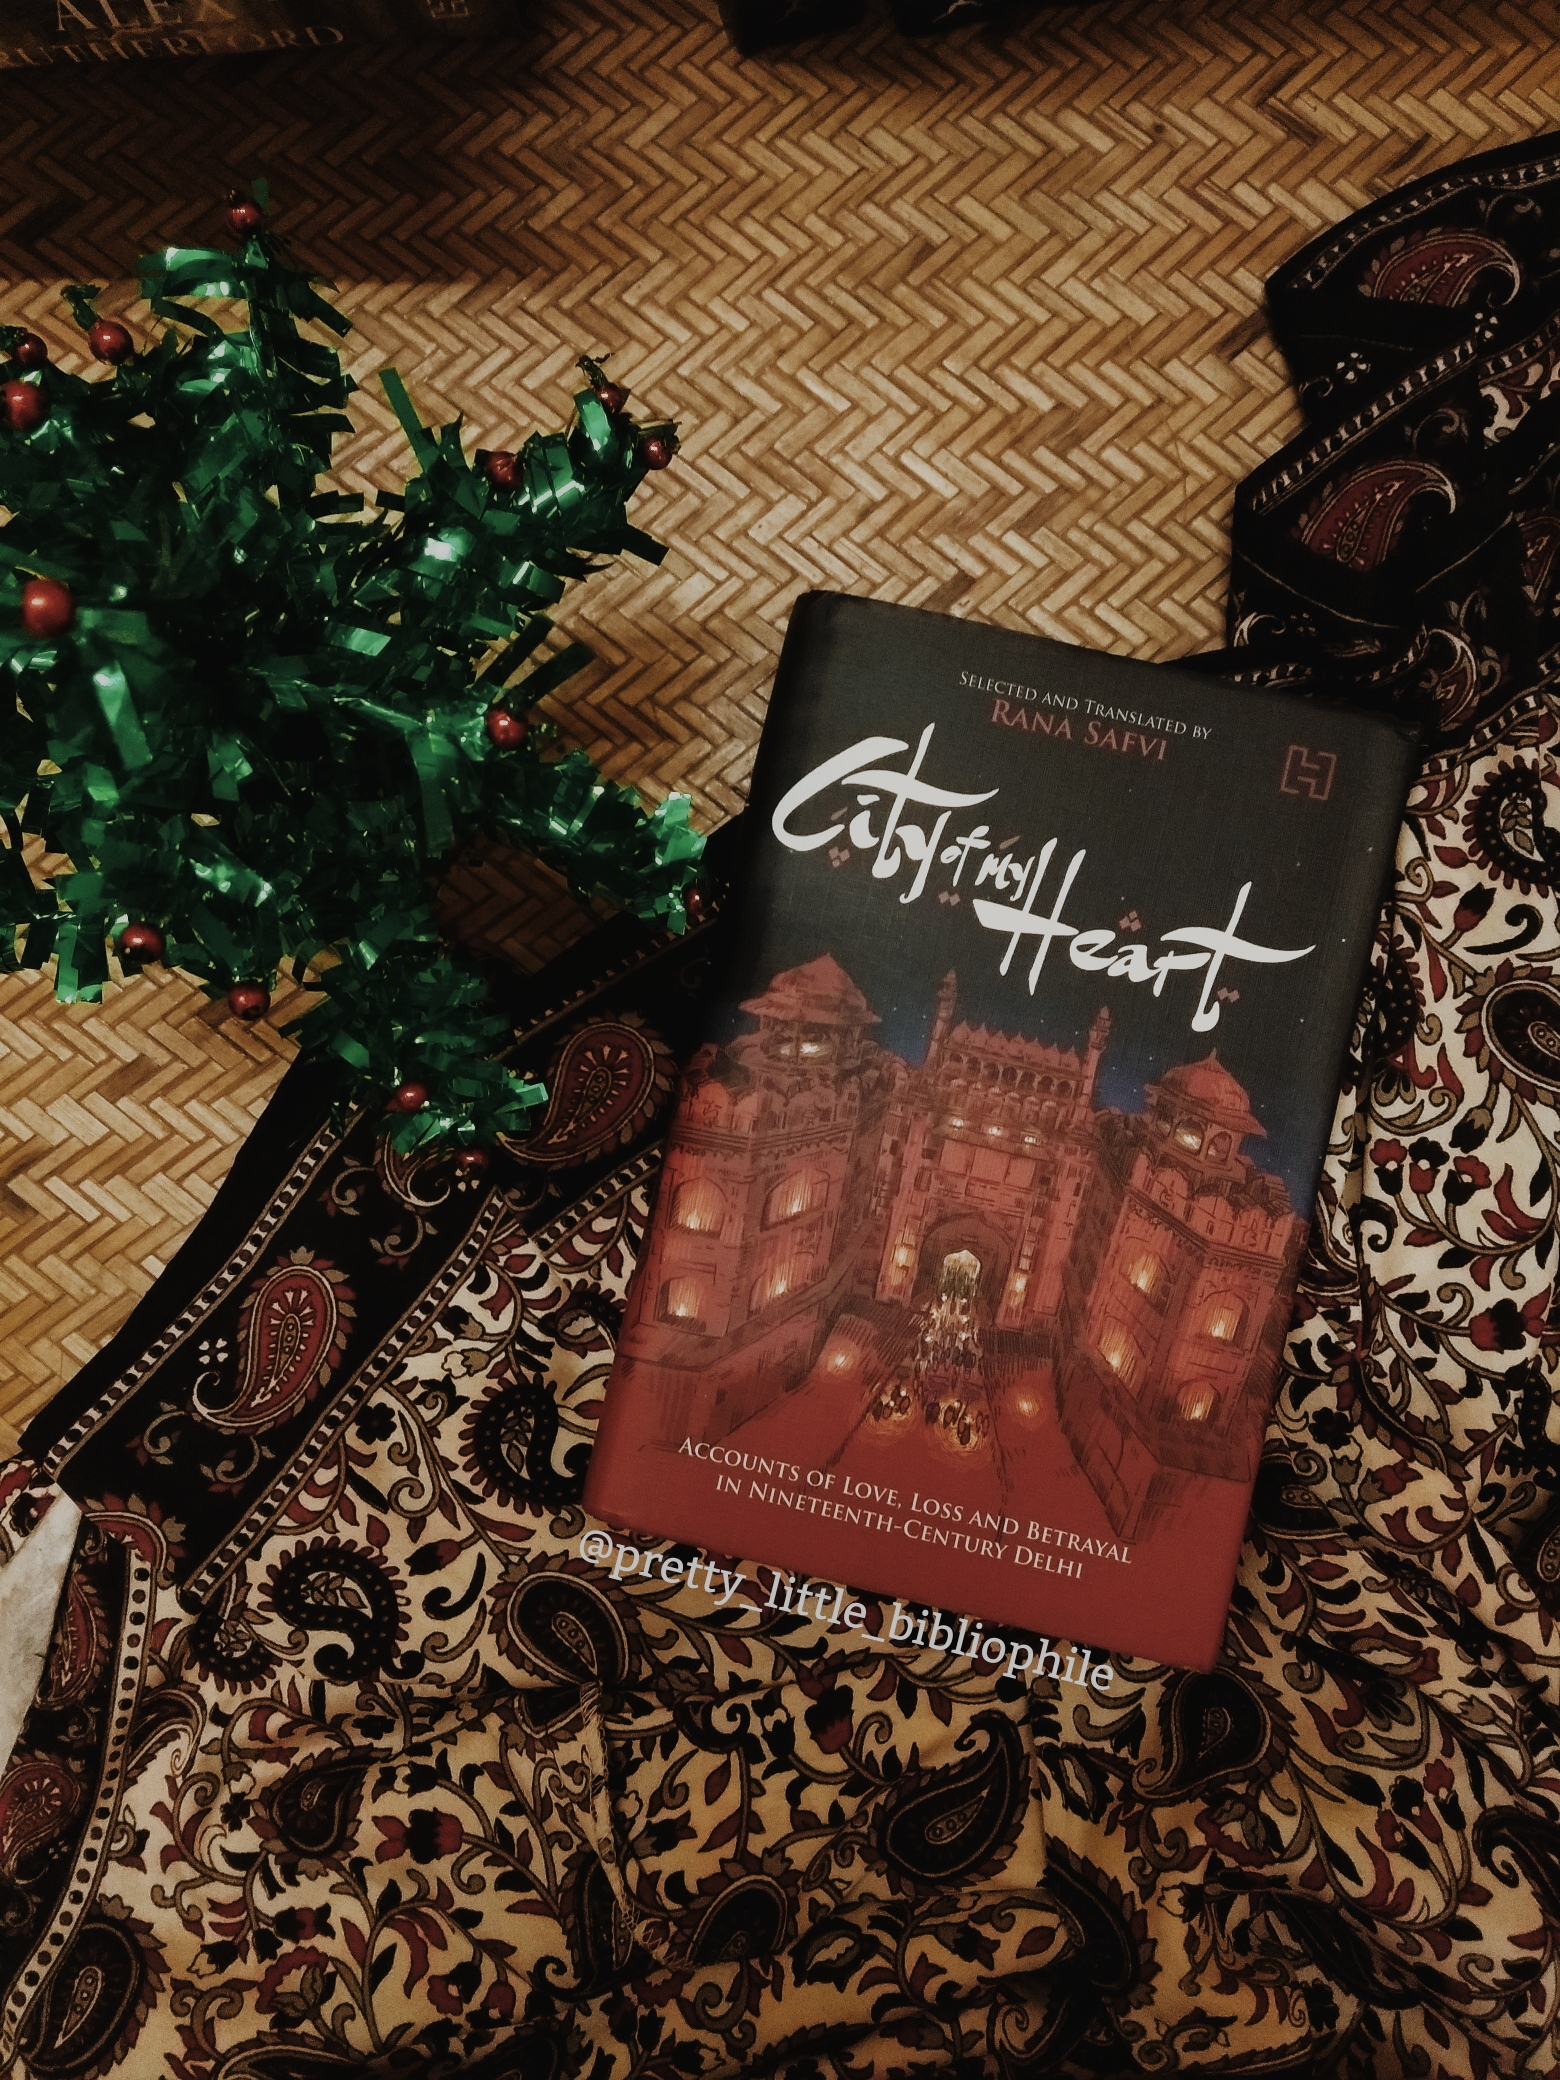 City of my Heart, selected and translated by Rana Safvi, 2018